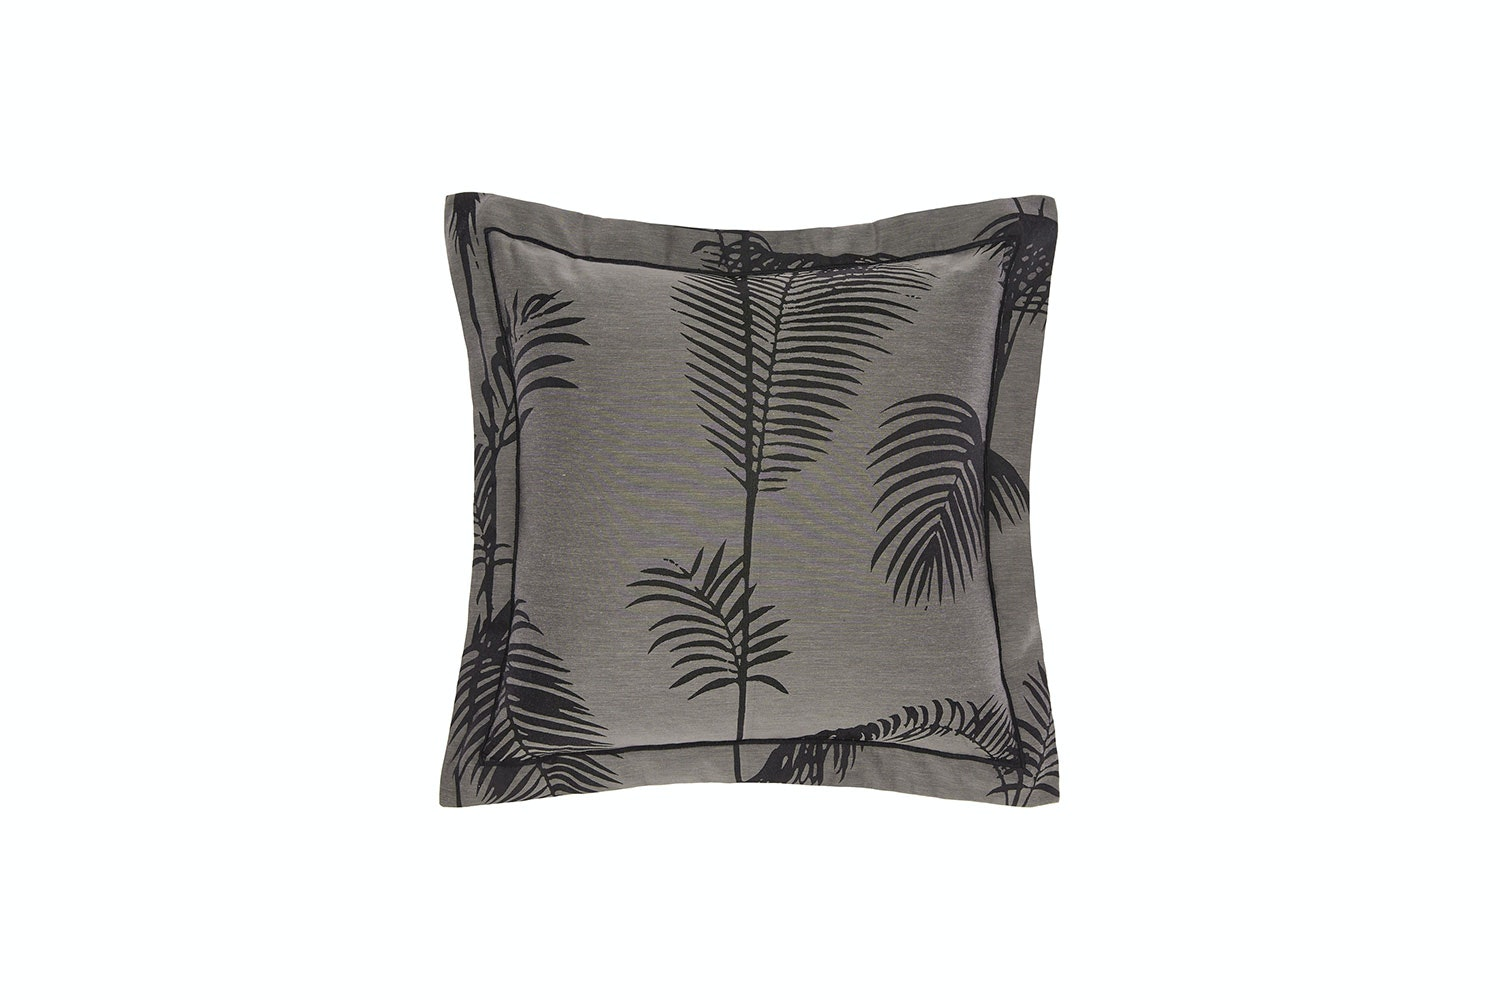 Savona Carraway European Pillowcase